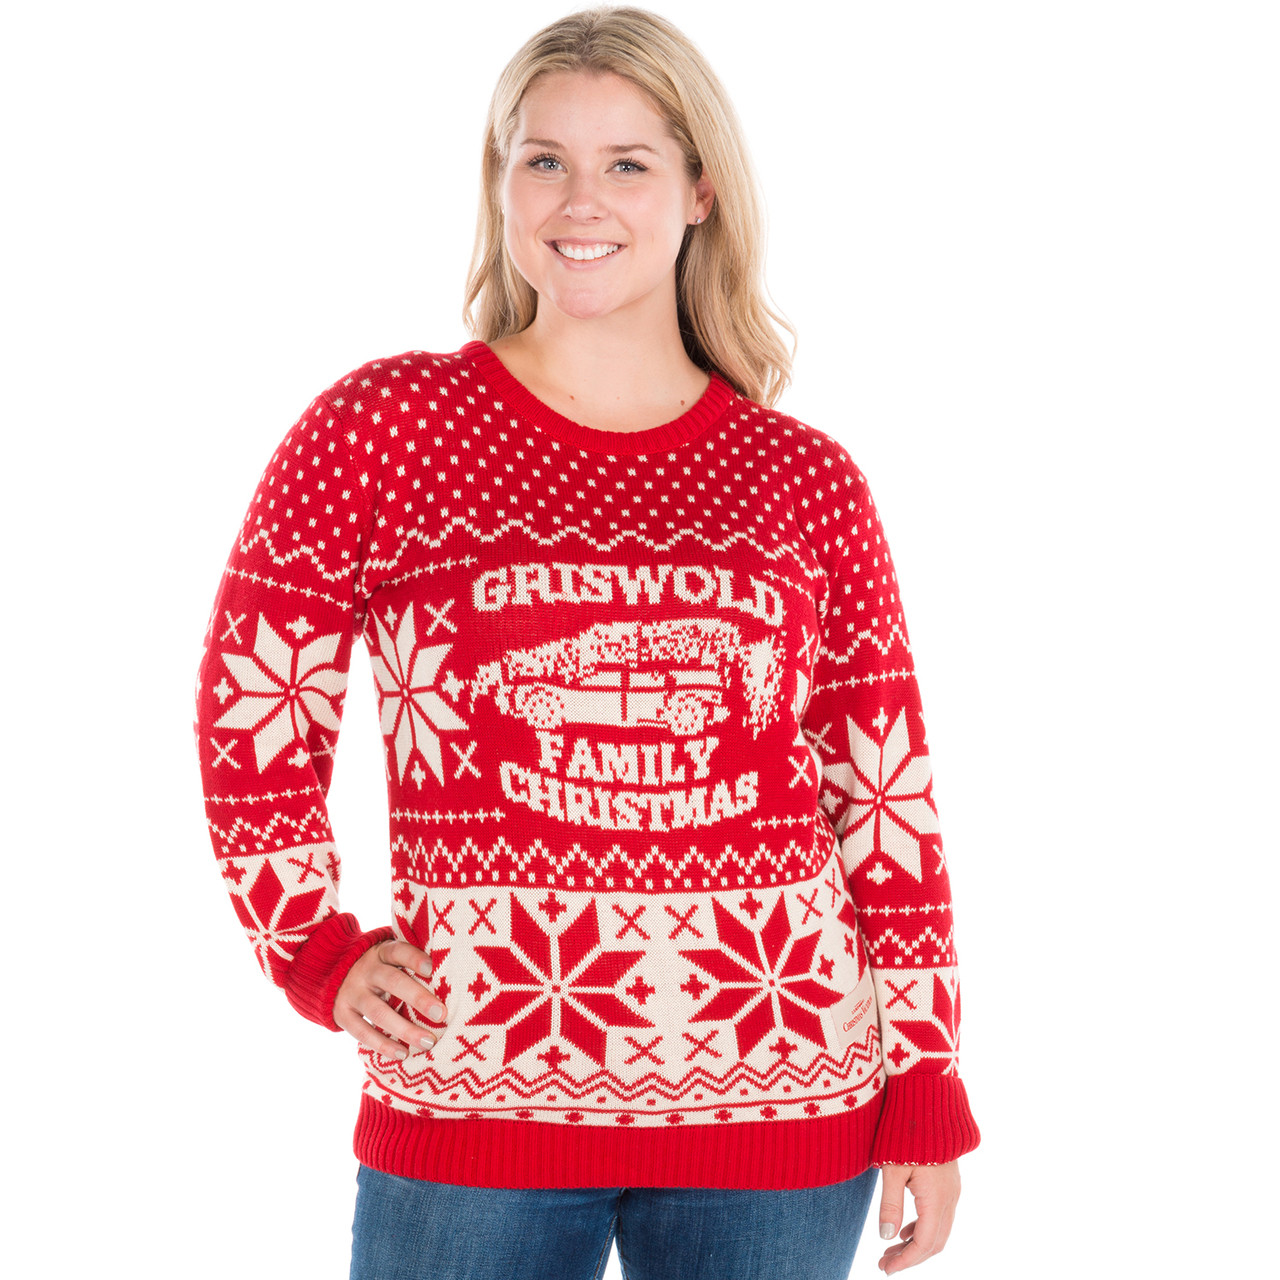 christmas sweater with lights on it